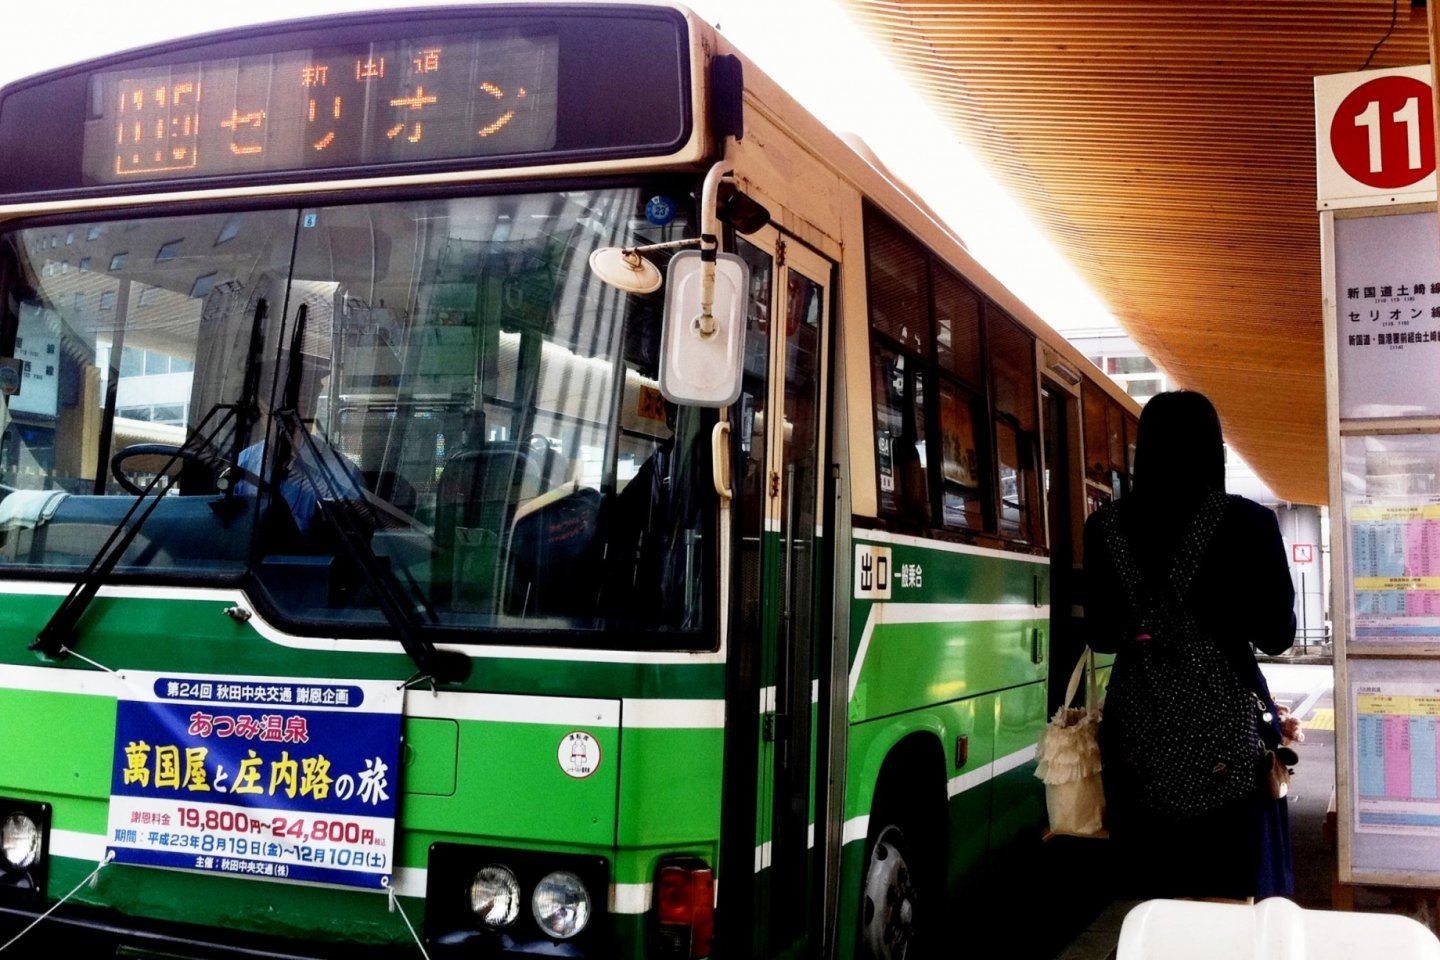 The all-day unlimited rides bus pass may be more convenient and cheaper for multiple (>4) long distance trips to places like Port SelionTower/ Cruise Ship Terminal and the Lady of Akita Church.